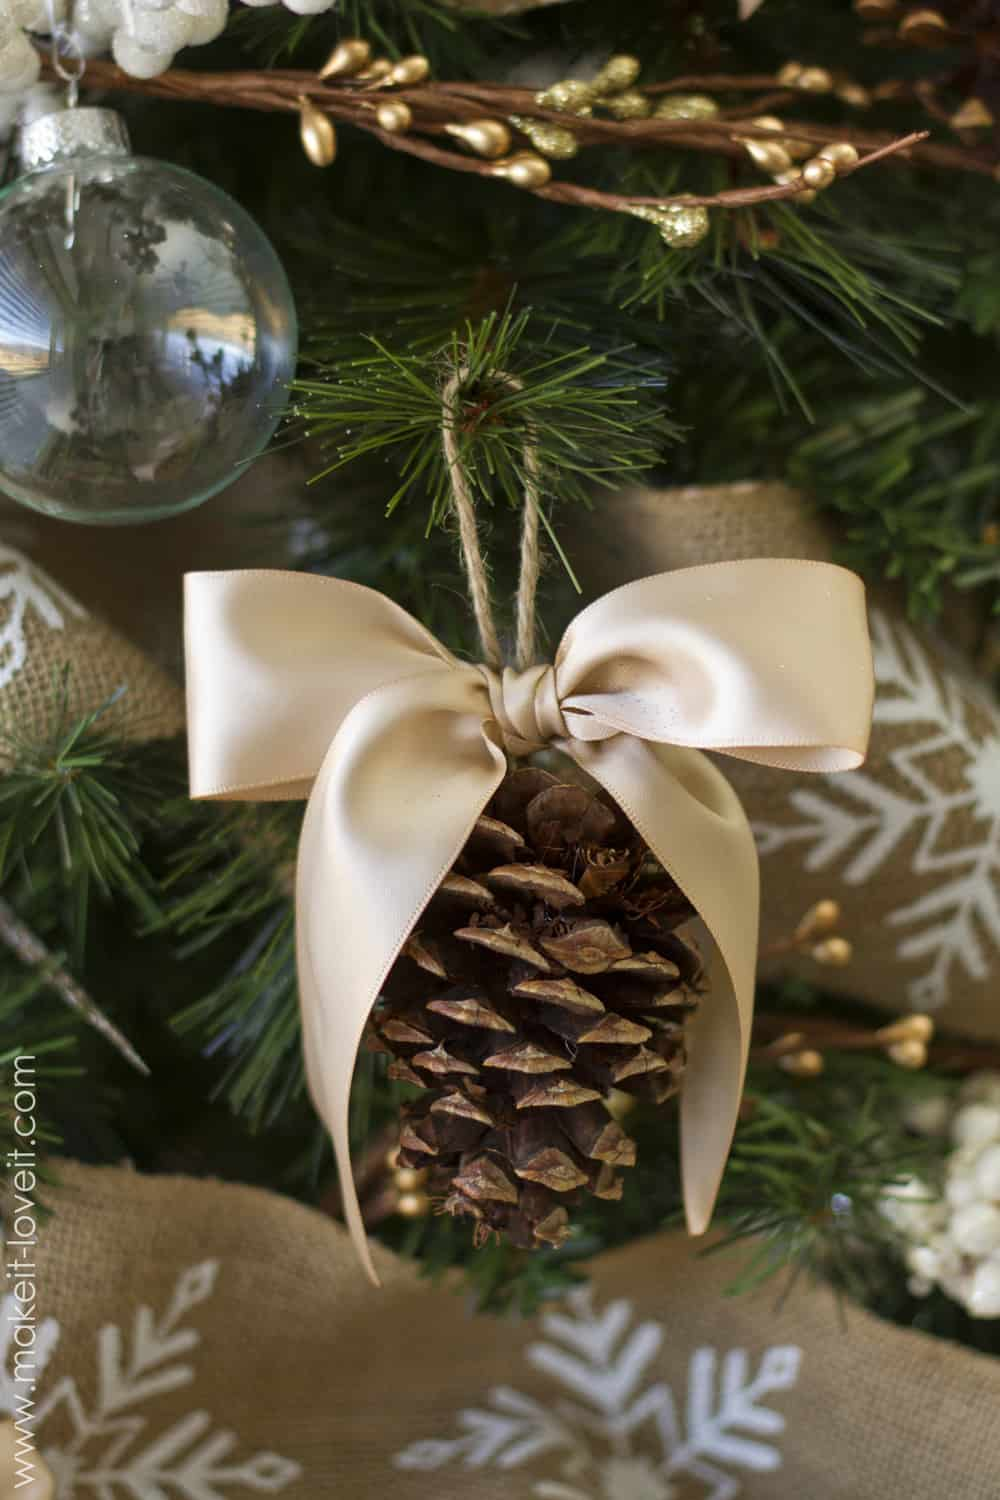 Simple, old fashioned pinecone ornaments